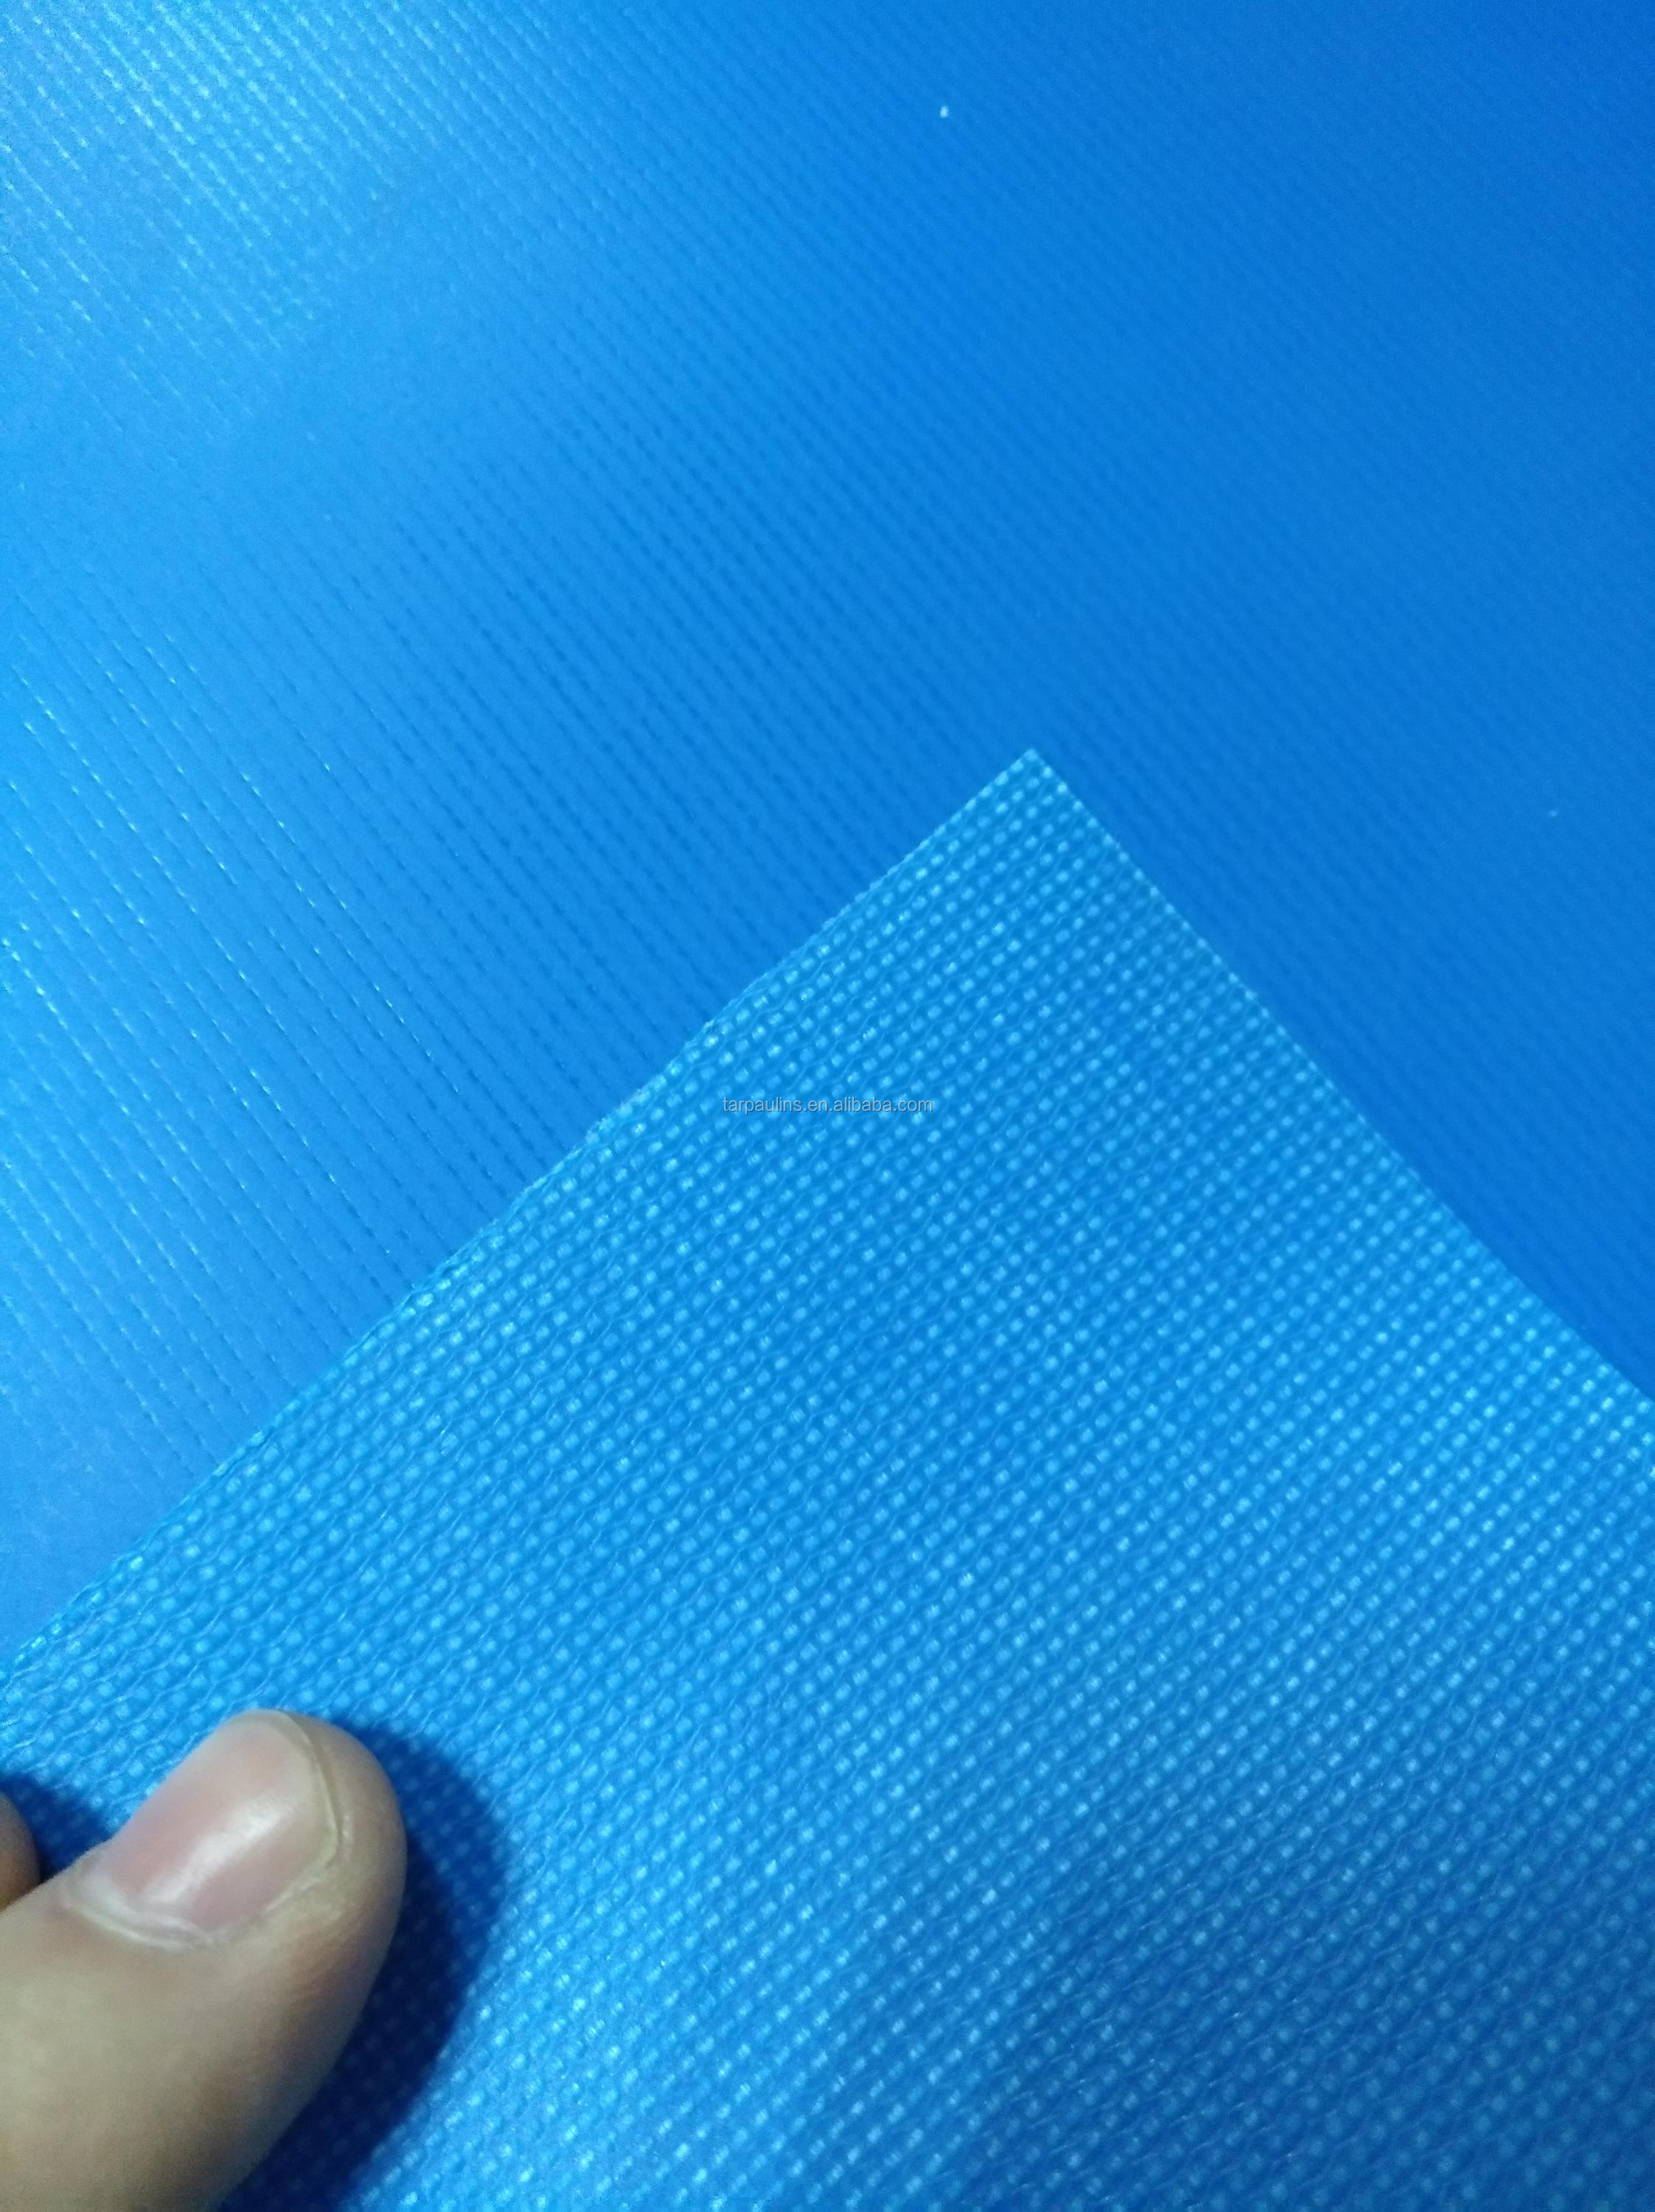 Tak Contractors Polyethylene Tarpaulin Sheet / PVCTarps Fabrics for Ground Sheet and Building Safety Curtain